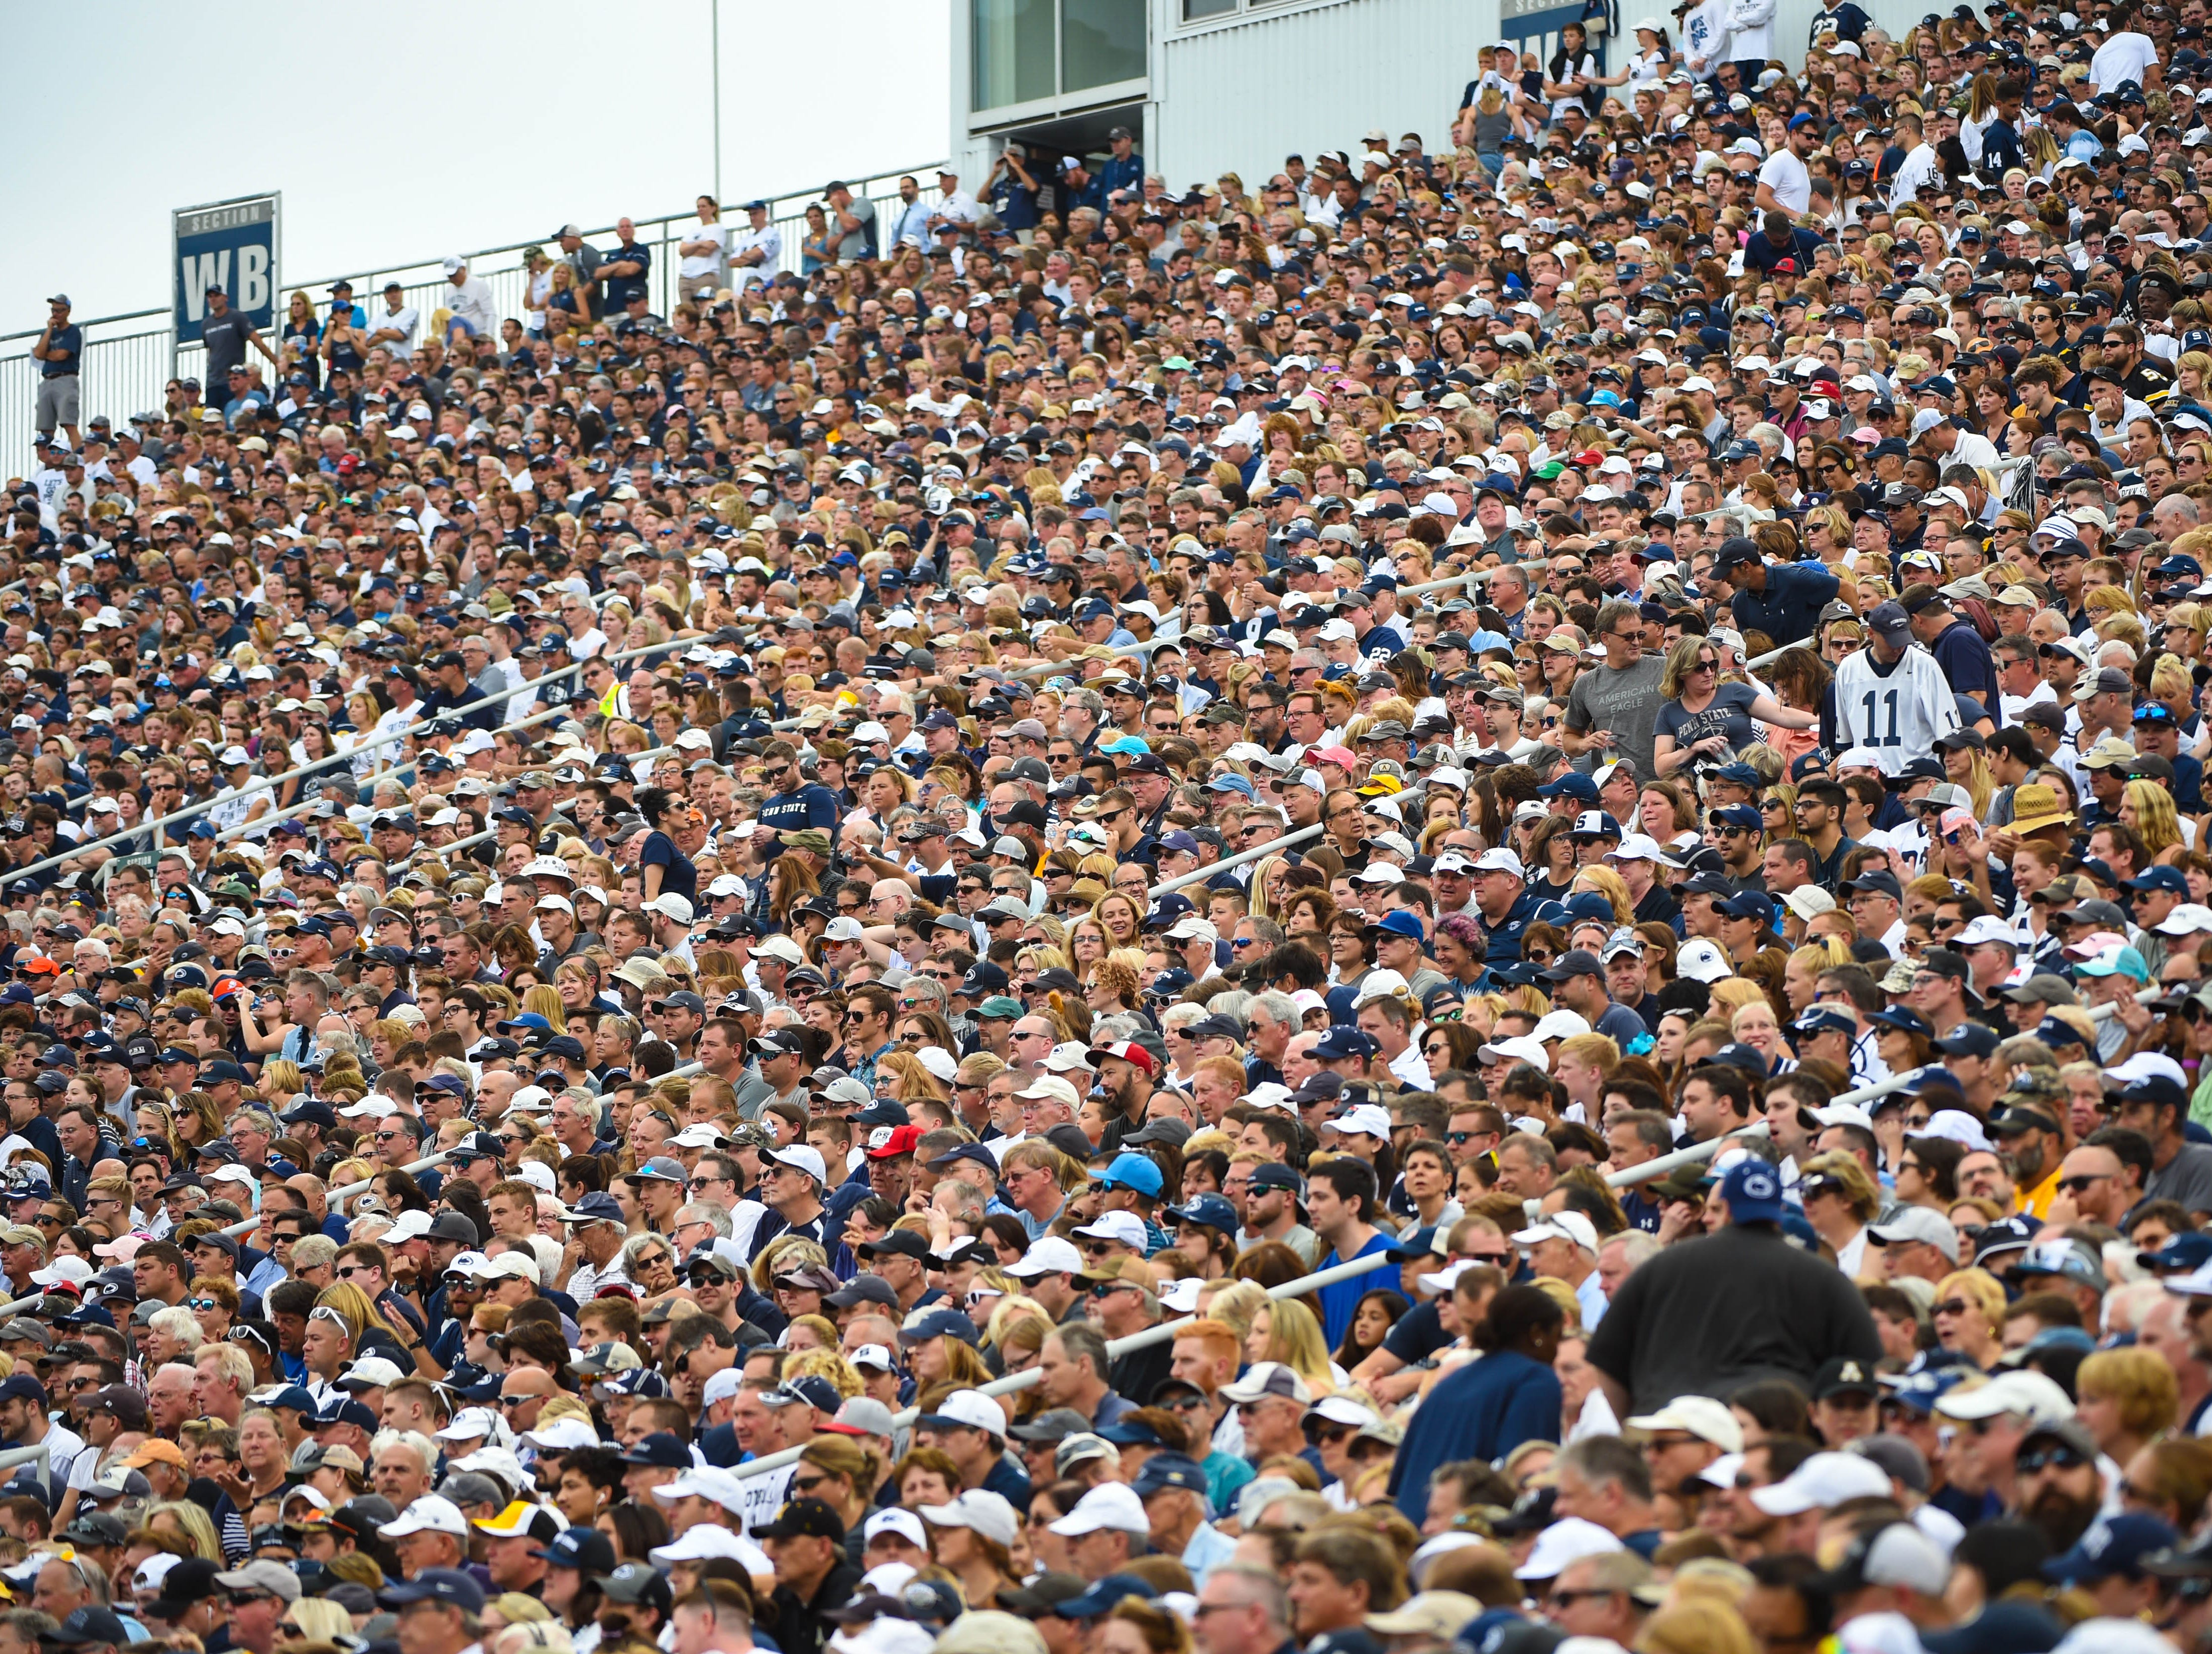 Over 100,000 fans filed into Beaver Stadium for the Penn State home opener against Appalachian State on September 1, 2018.